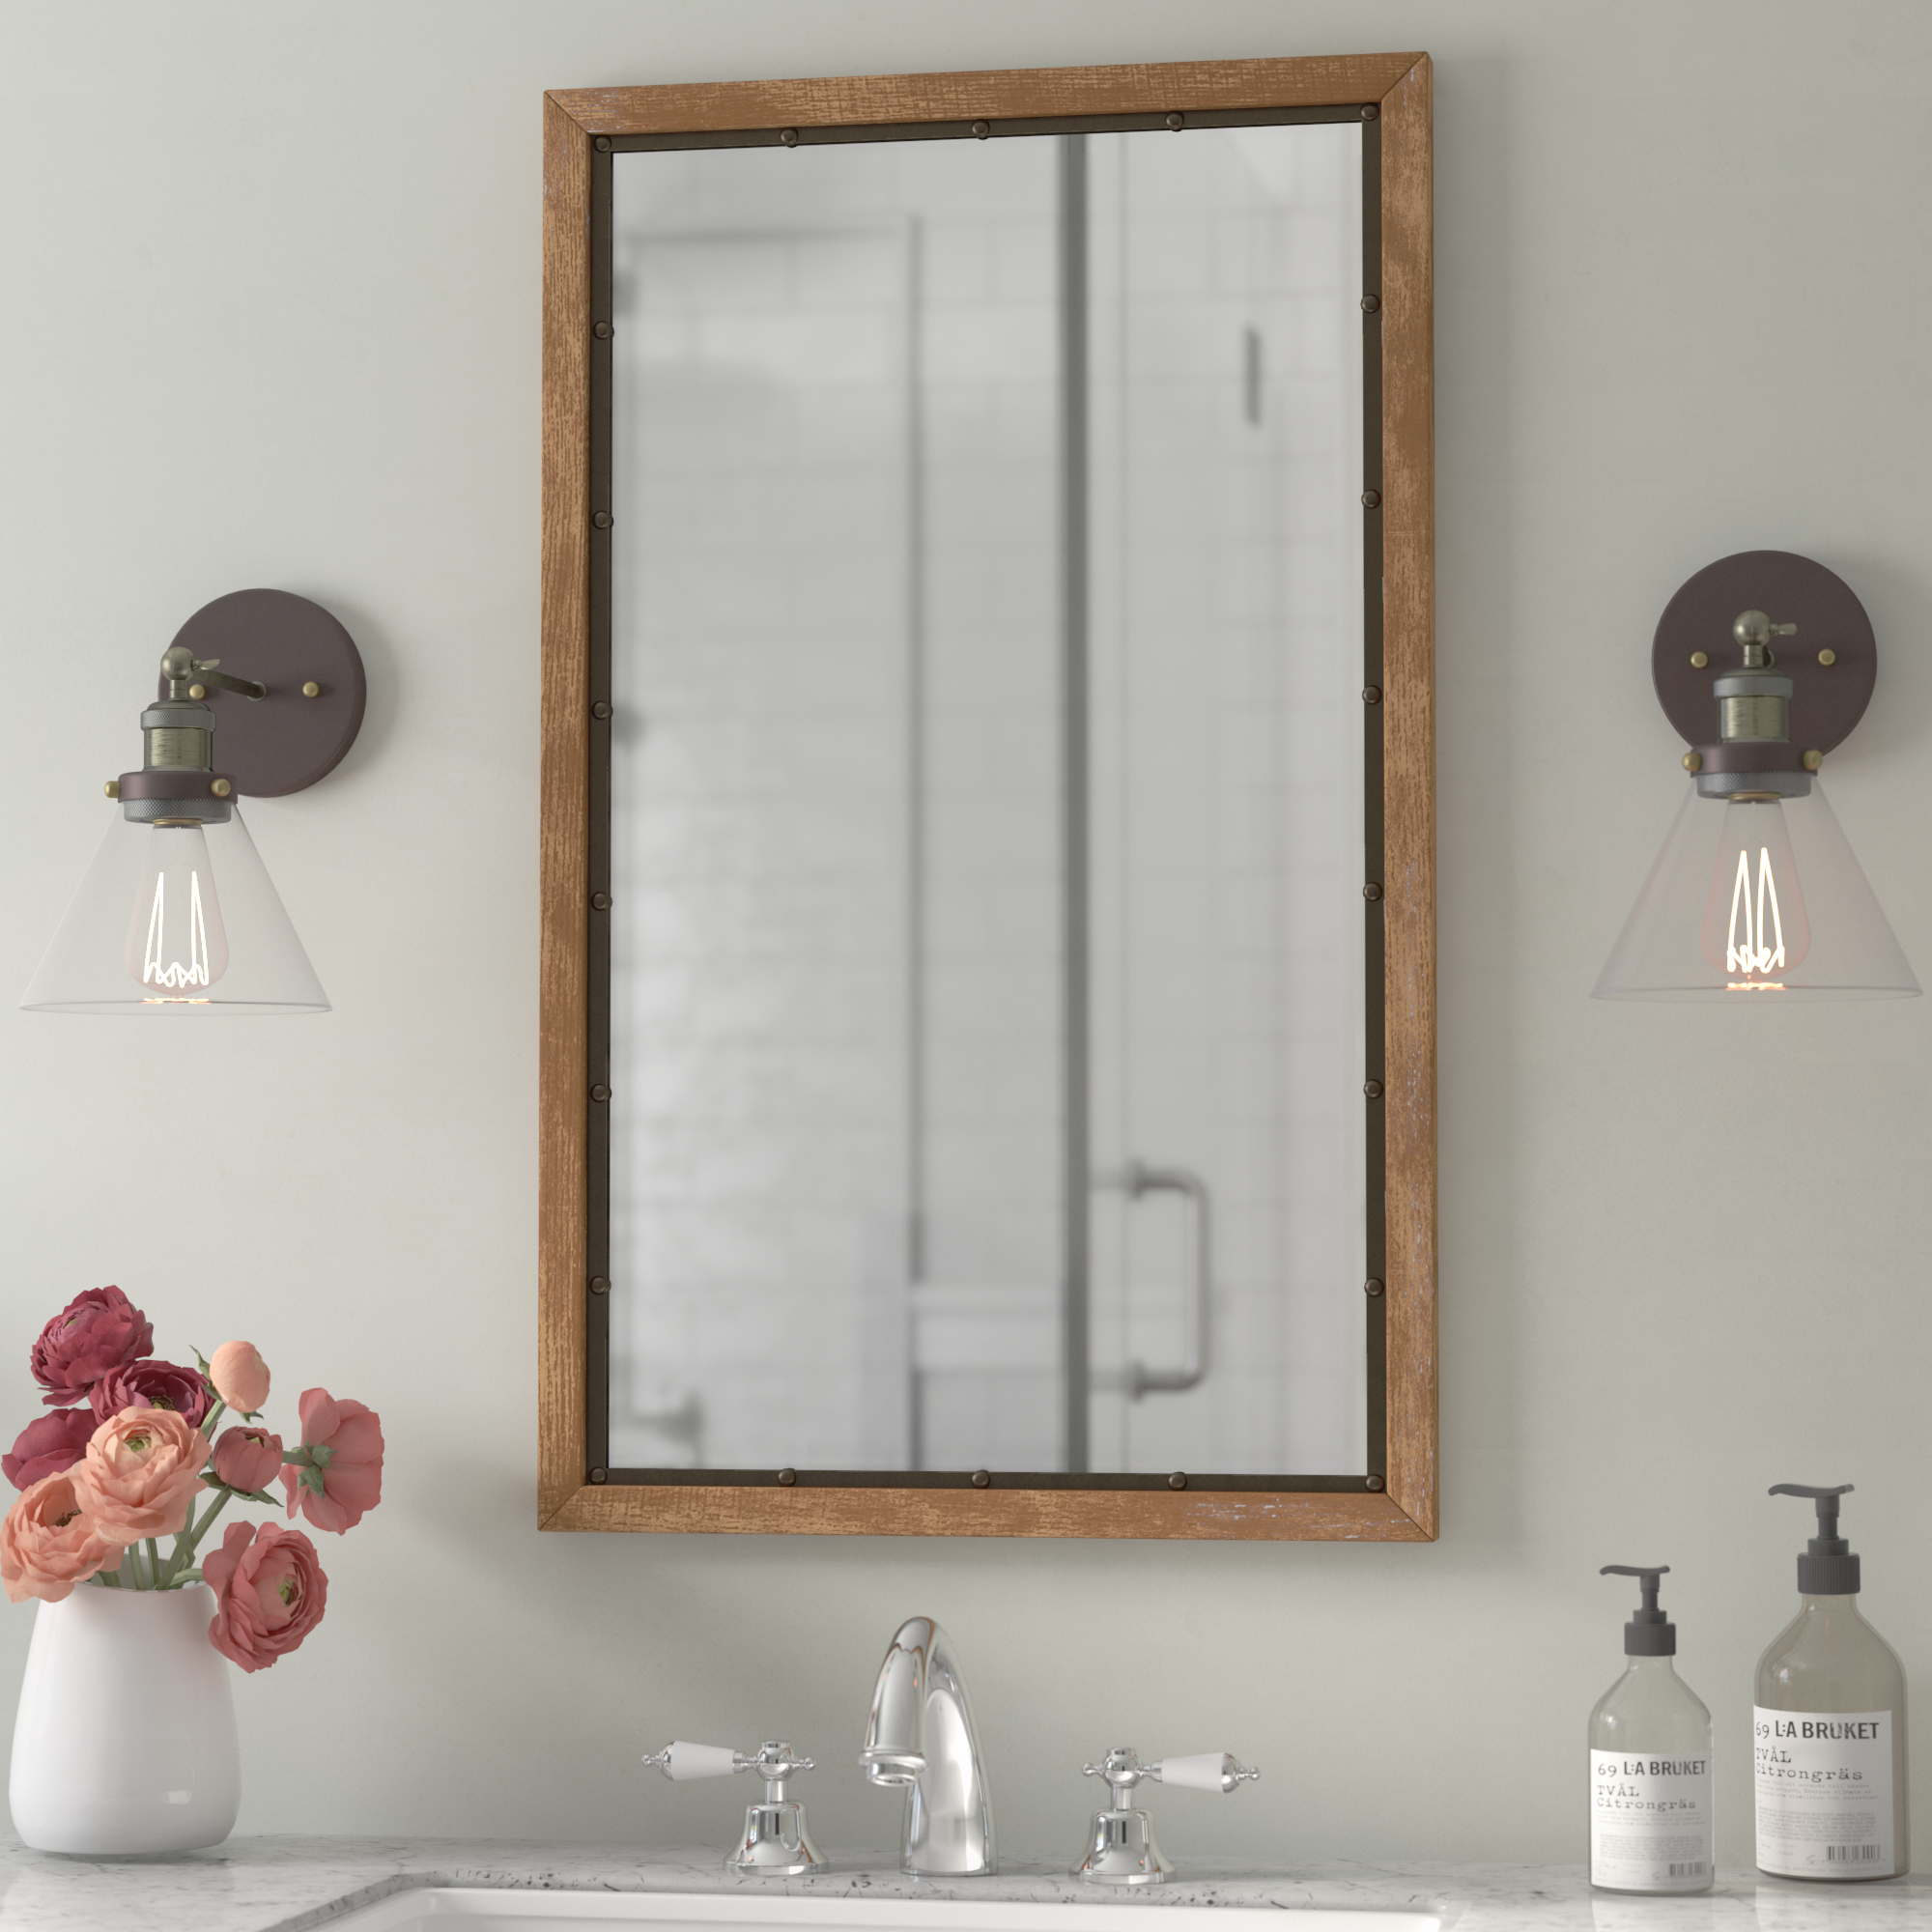 Farmhouse & Rustic Mirrors | Birch Lane Regarding Wood Accent Mirrors (View 16 of 20)